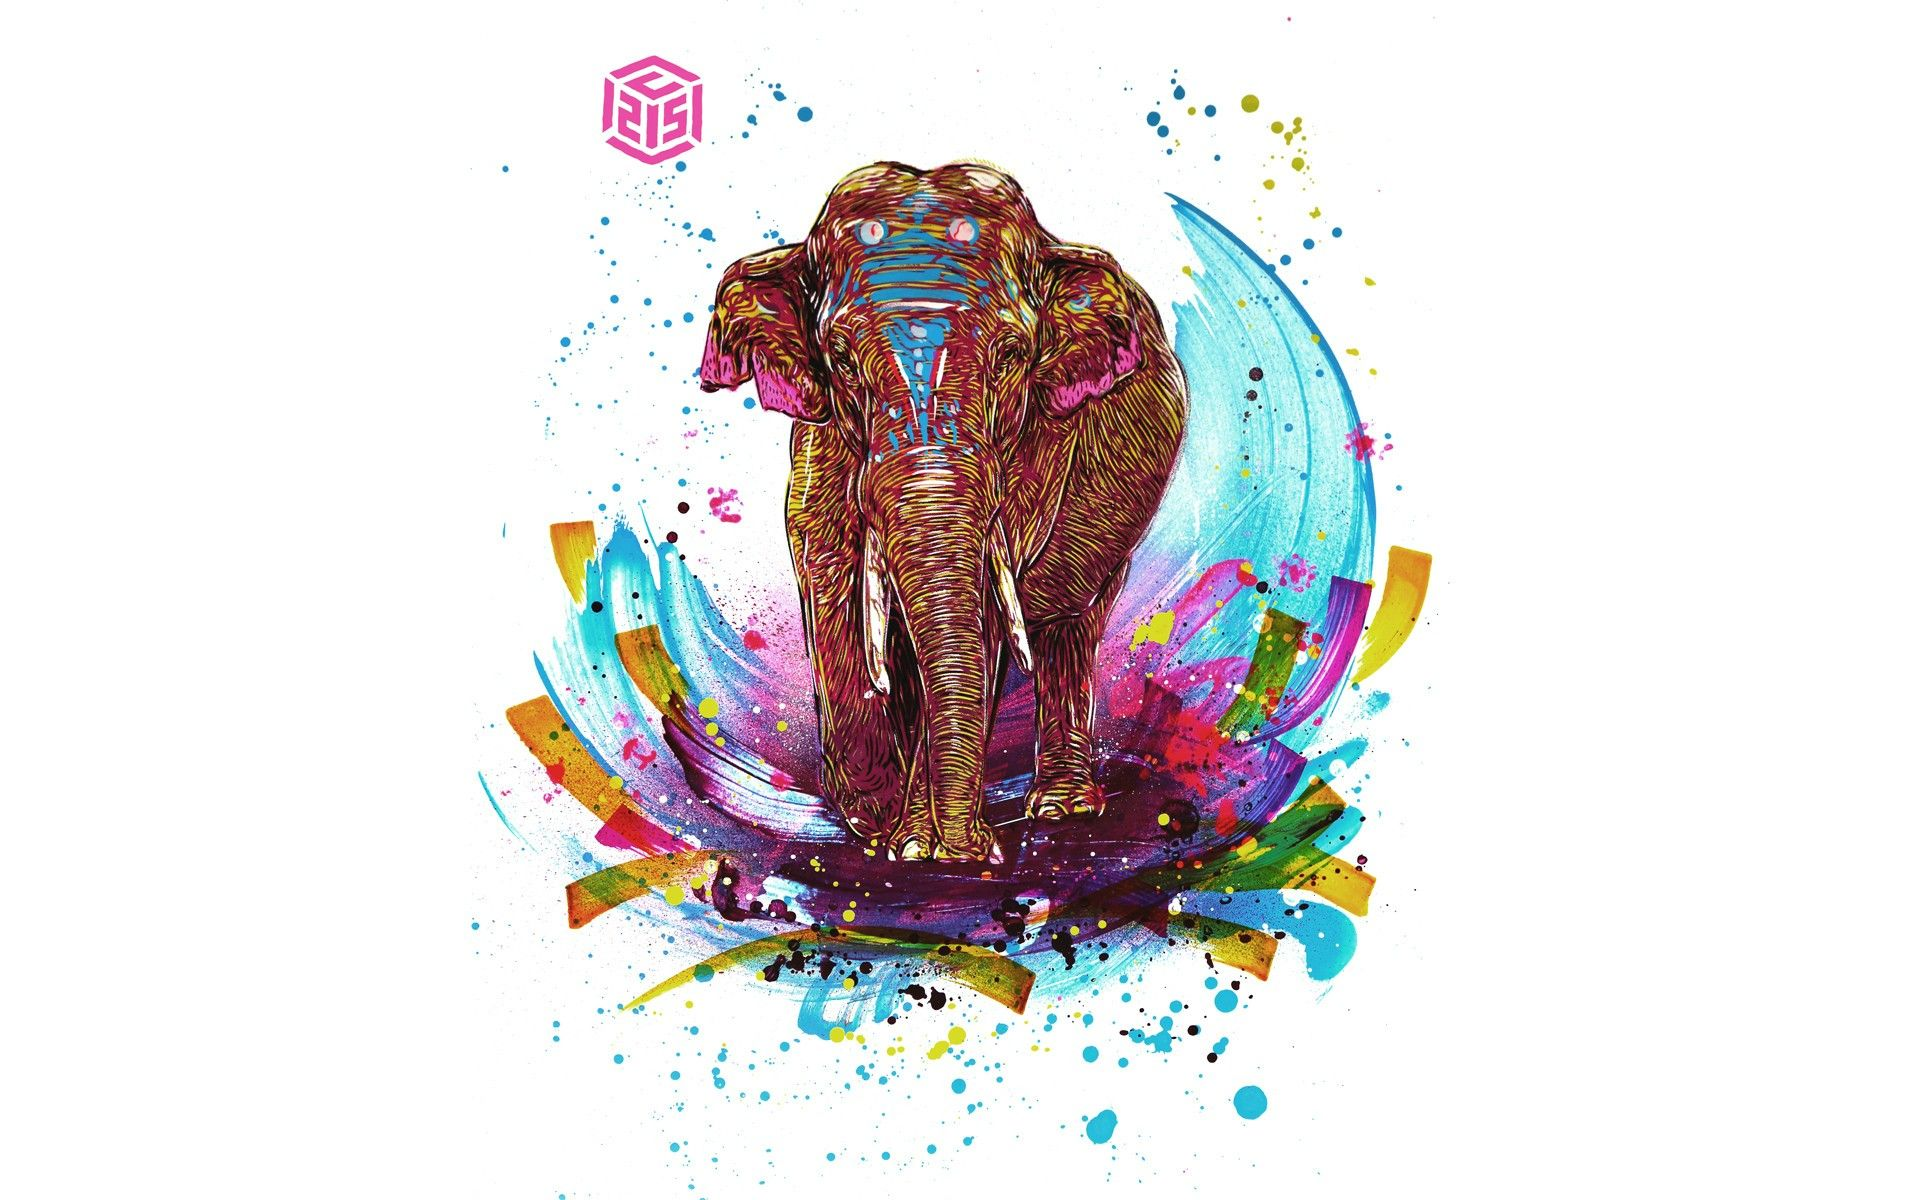 elephant wallpaper collection for free download hd wallpapers pinterest elephant wallpaper elephant background and wallpaper